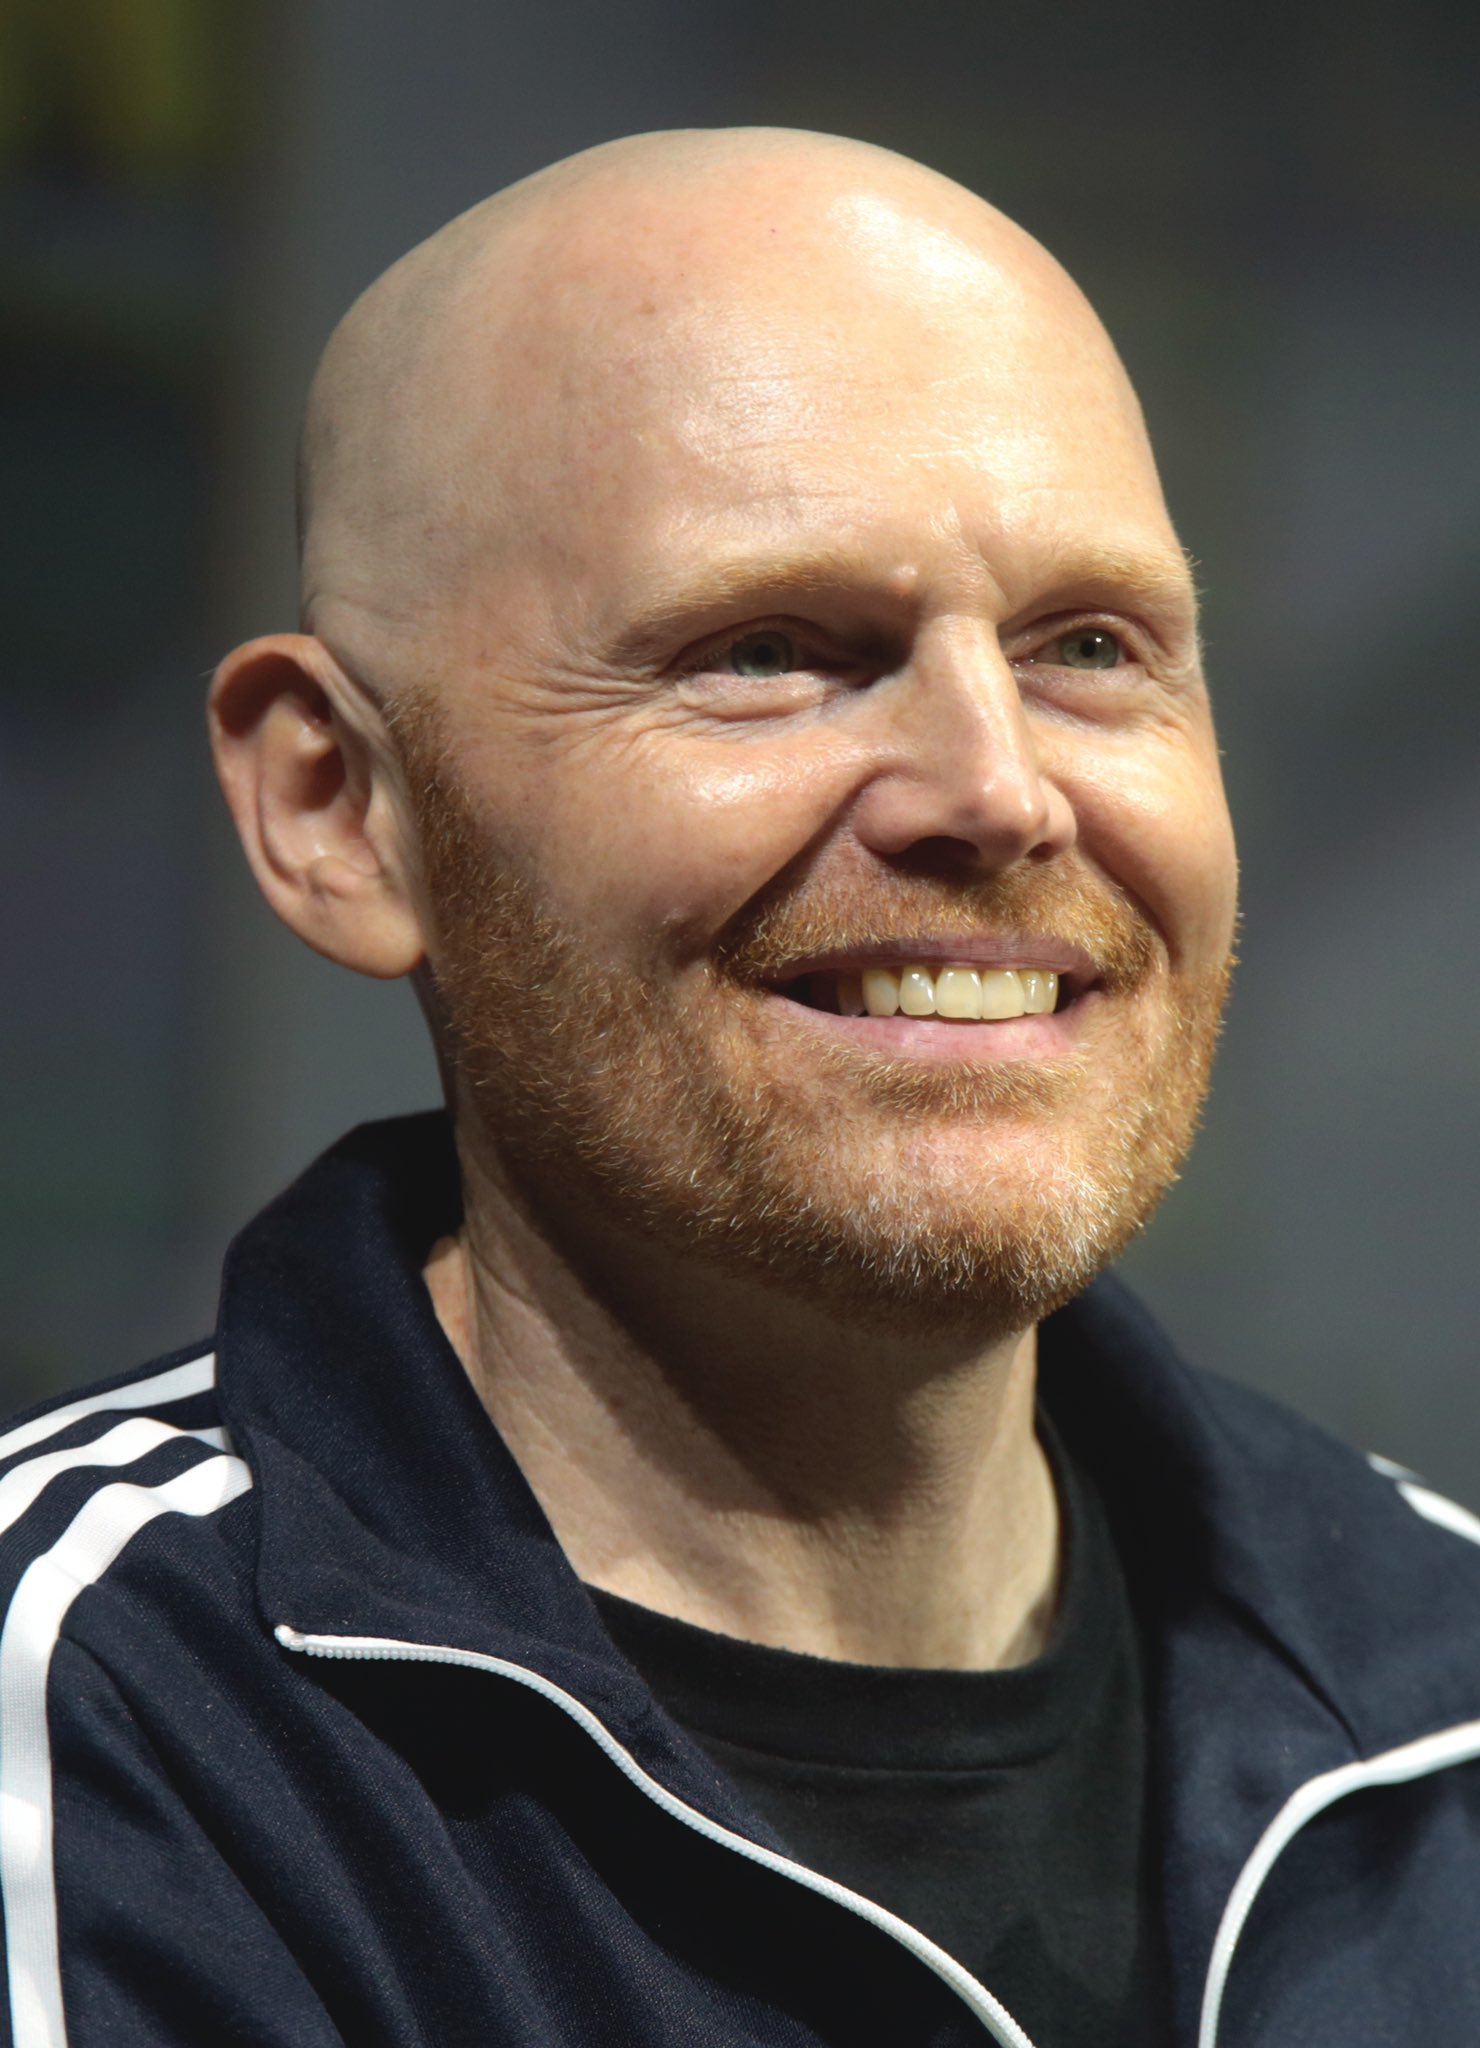 Happy birthday to Bill Burr. Probably my favorite comedian out there right now.